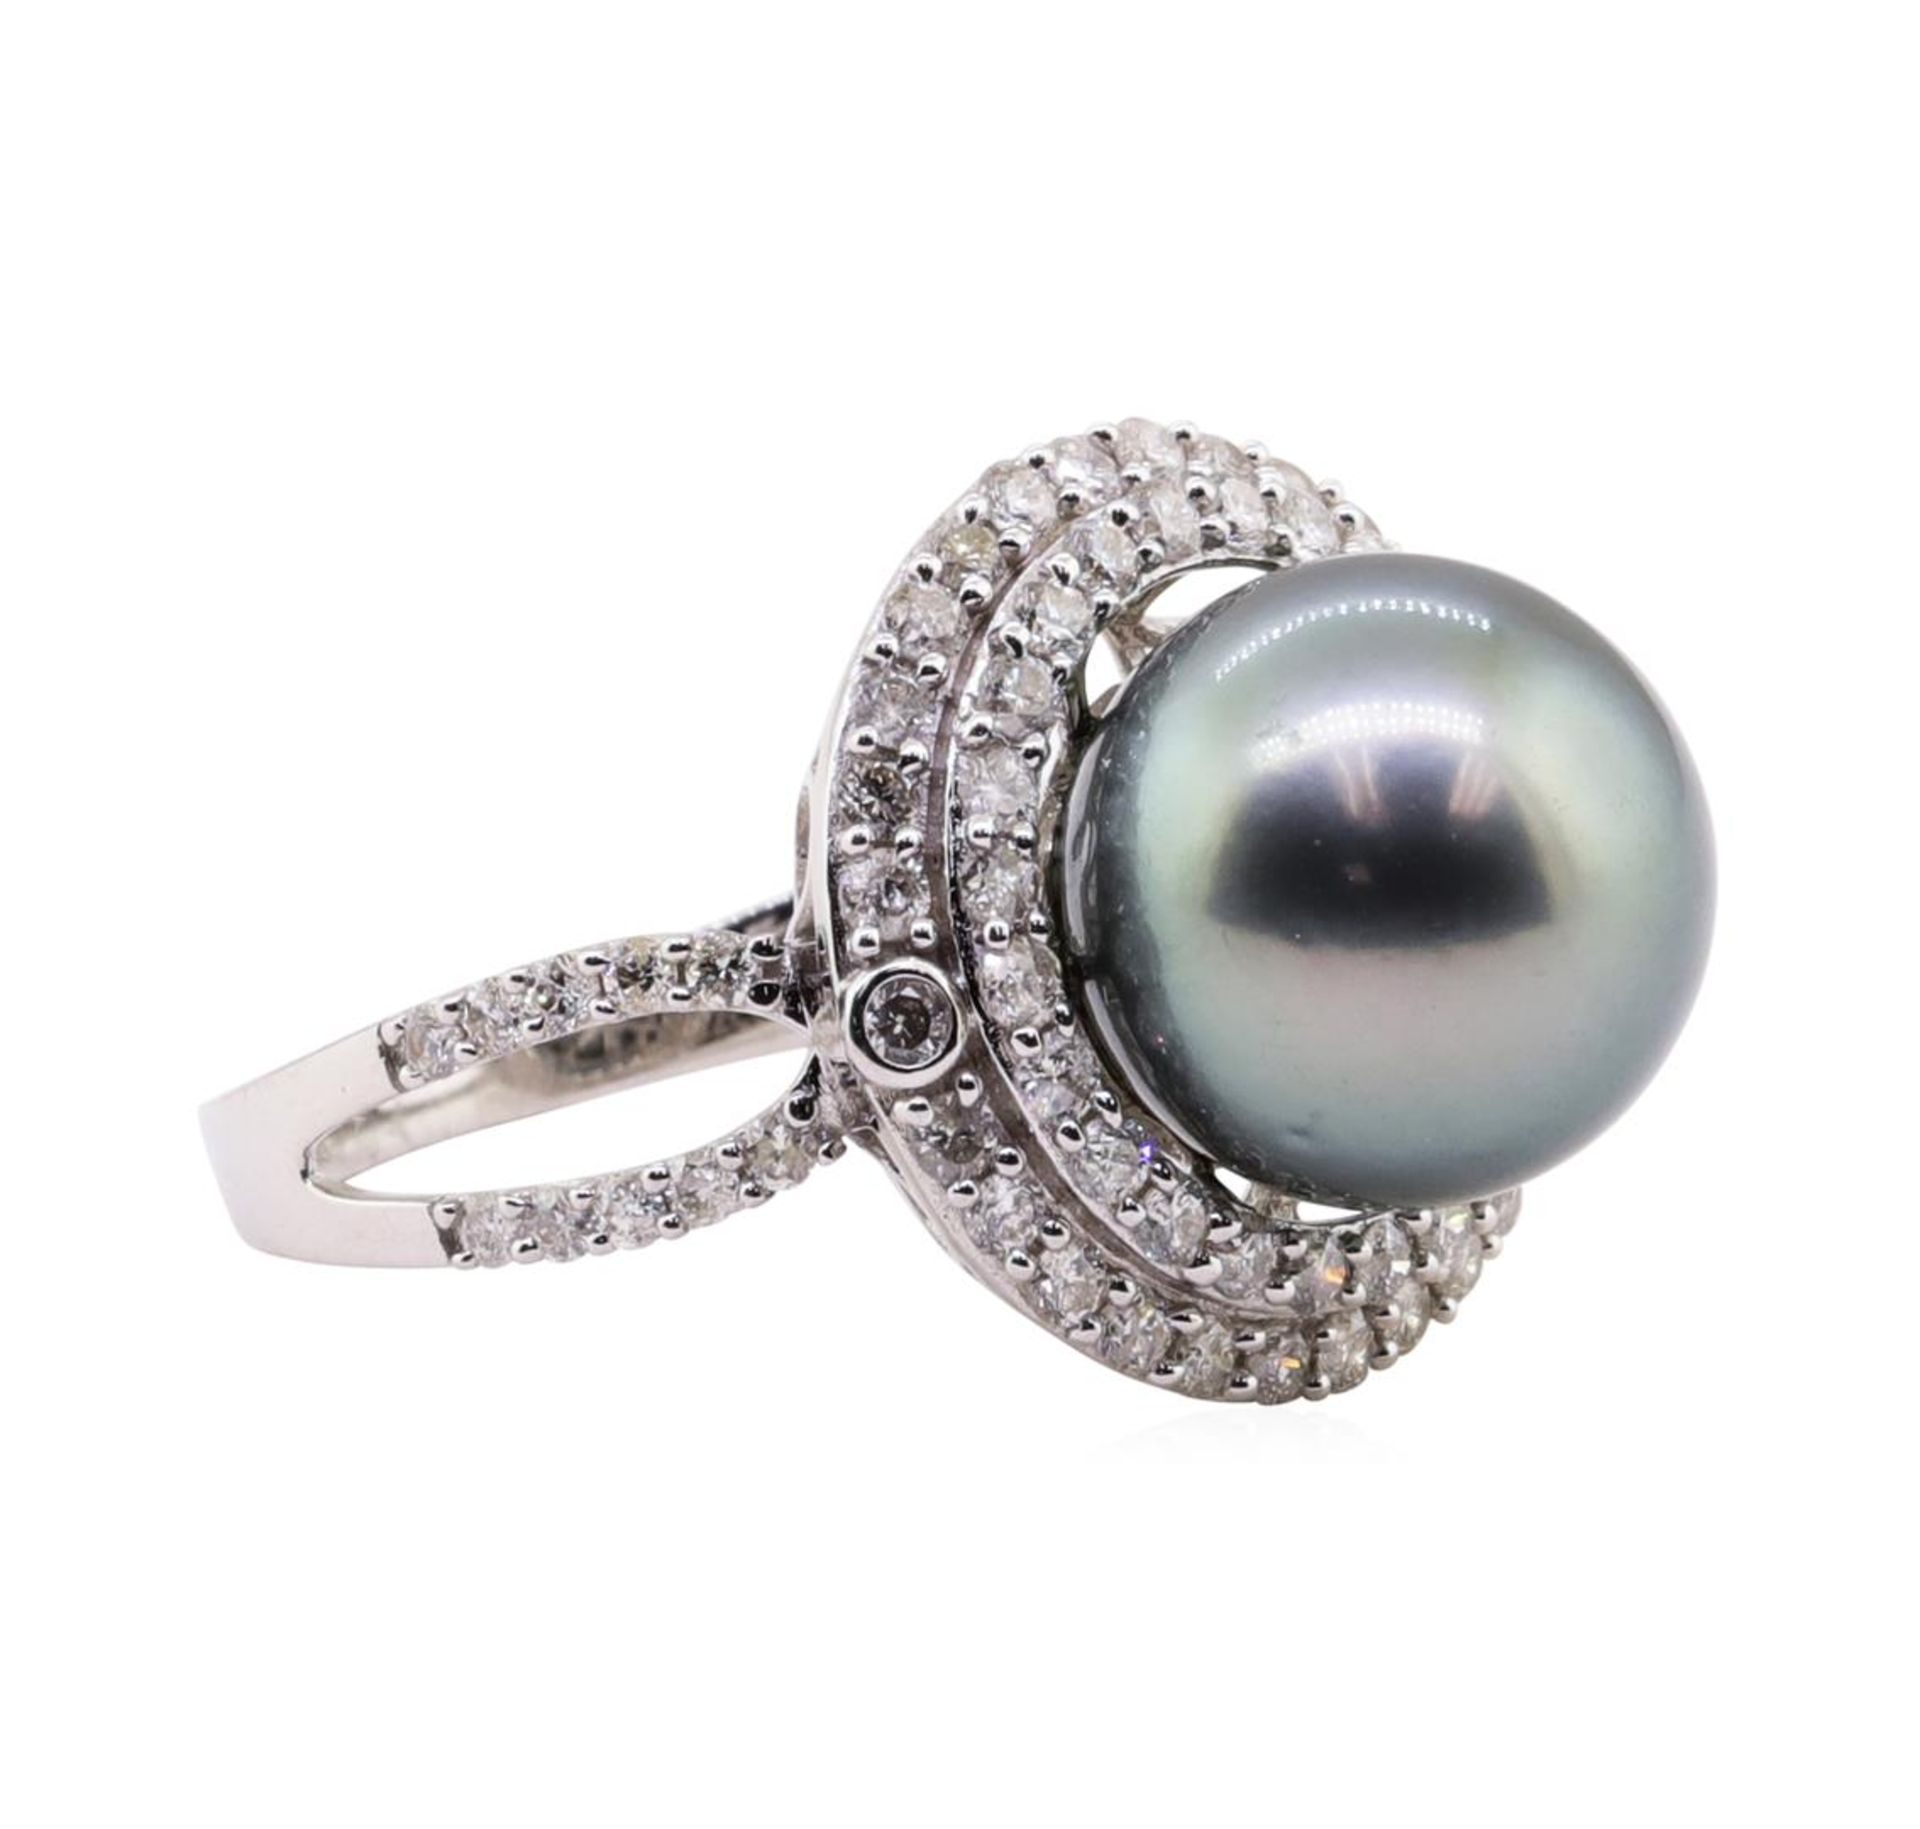 Tahitian Pearl and Diamond Ring - 18KT White Gold - Image 2 of 5